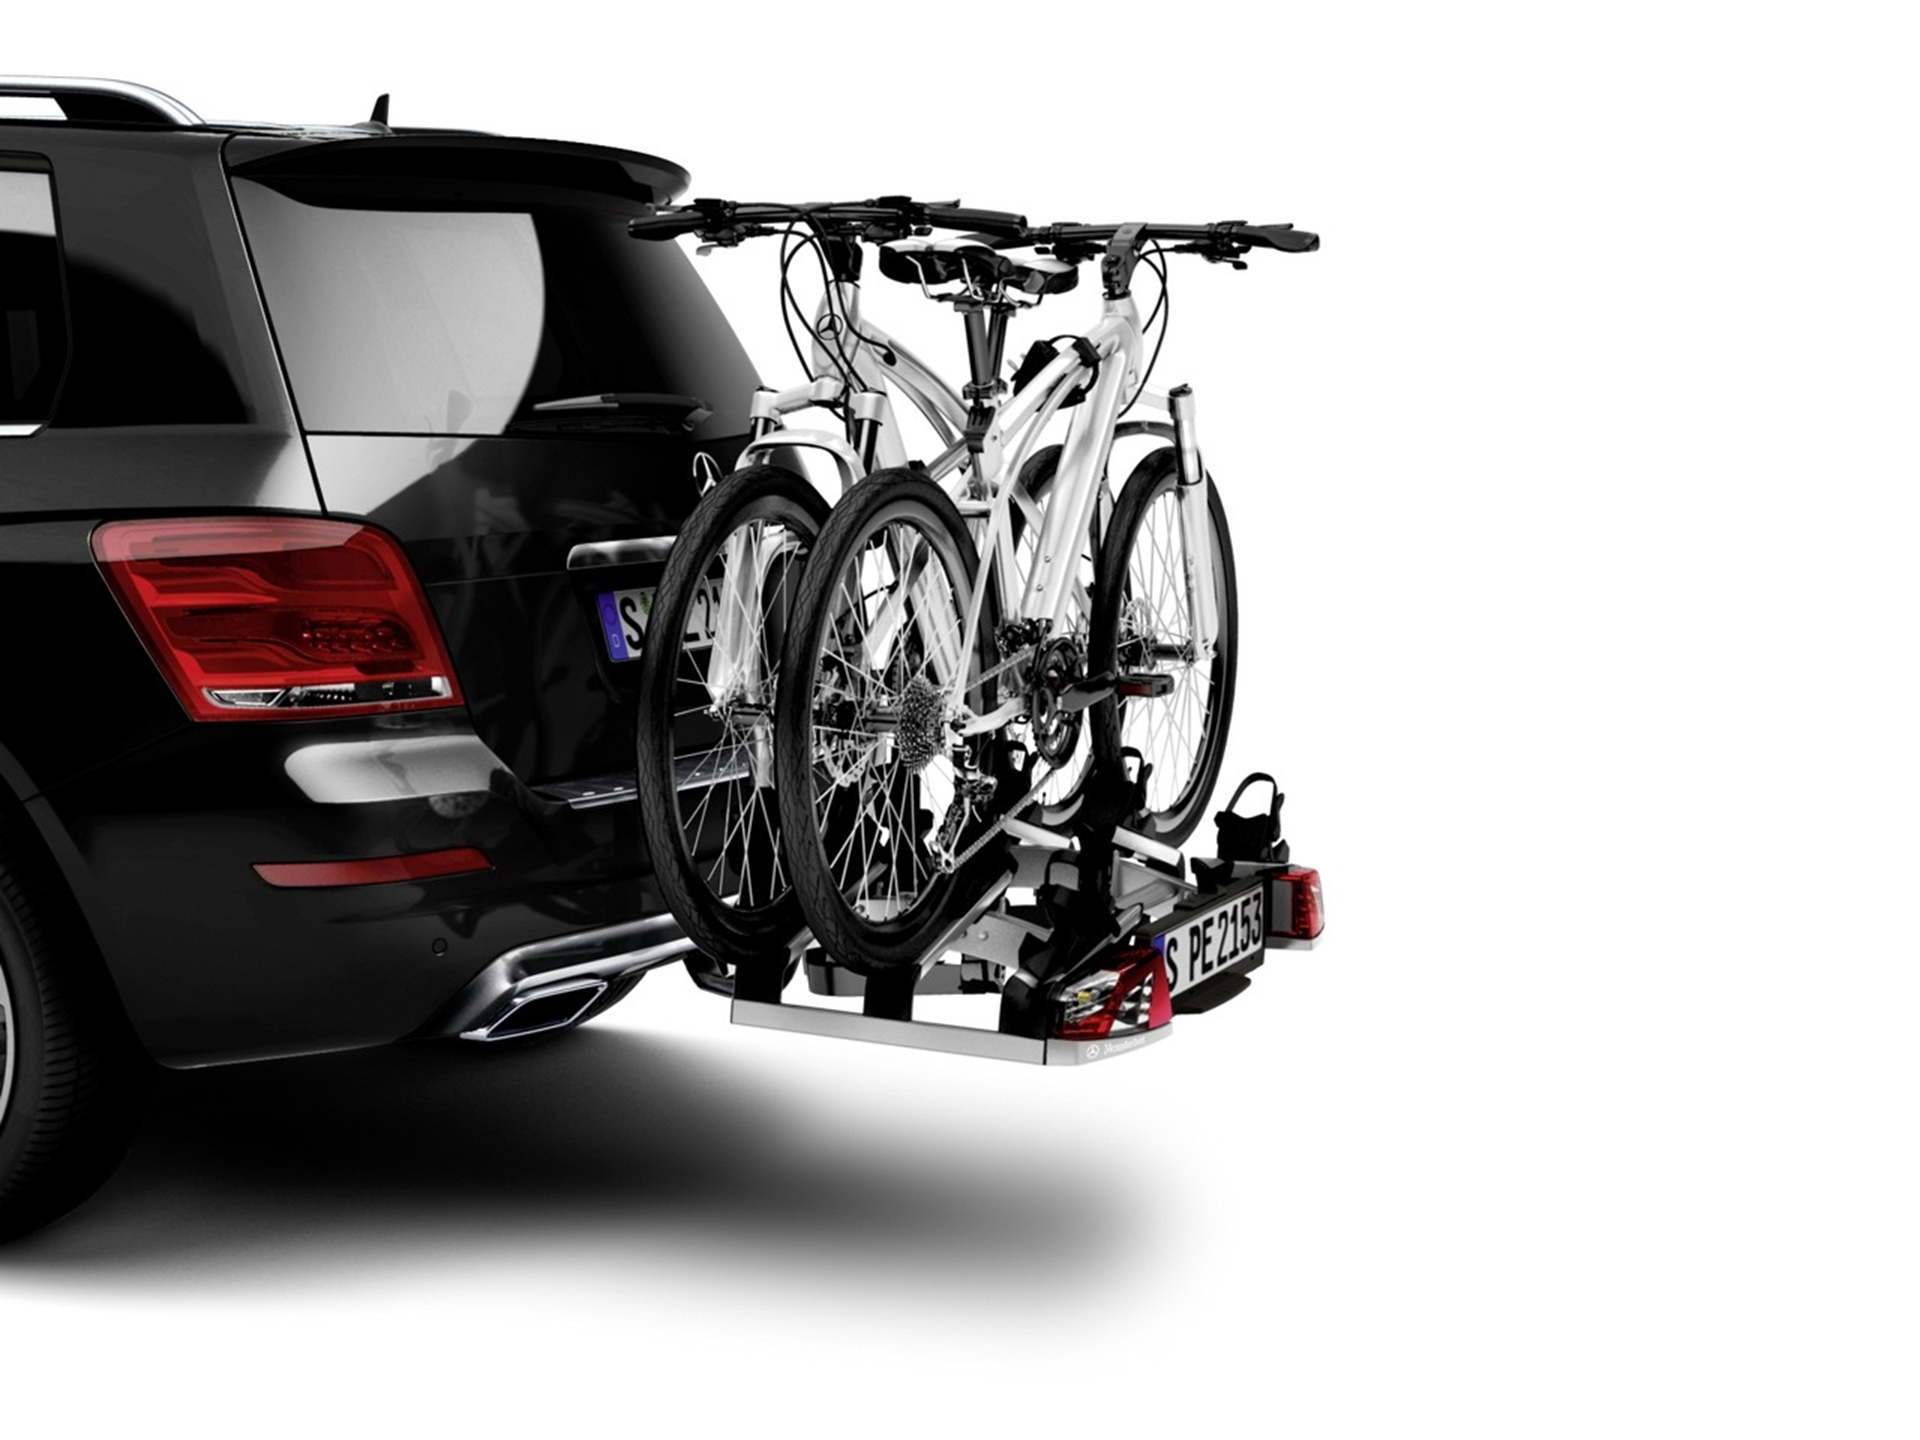 Mercedes-Benz Bicycle Rack